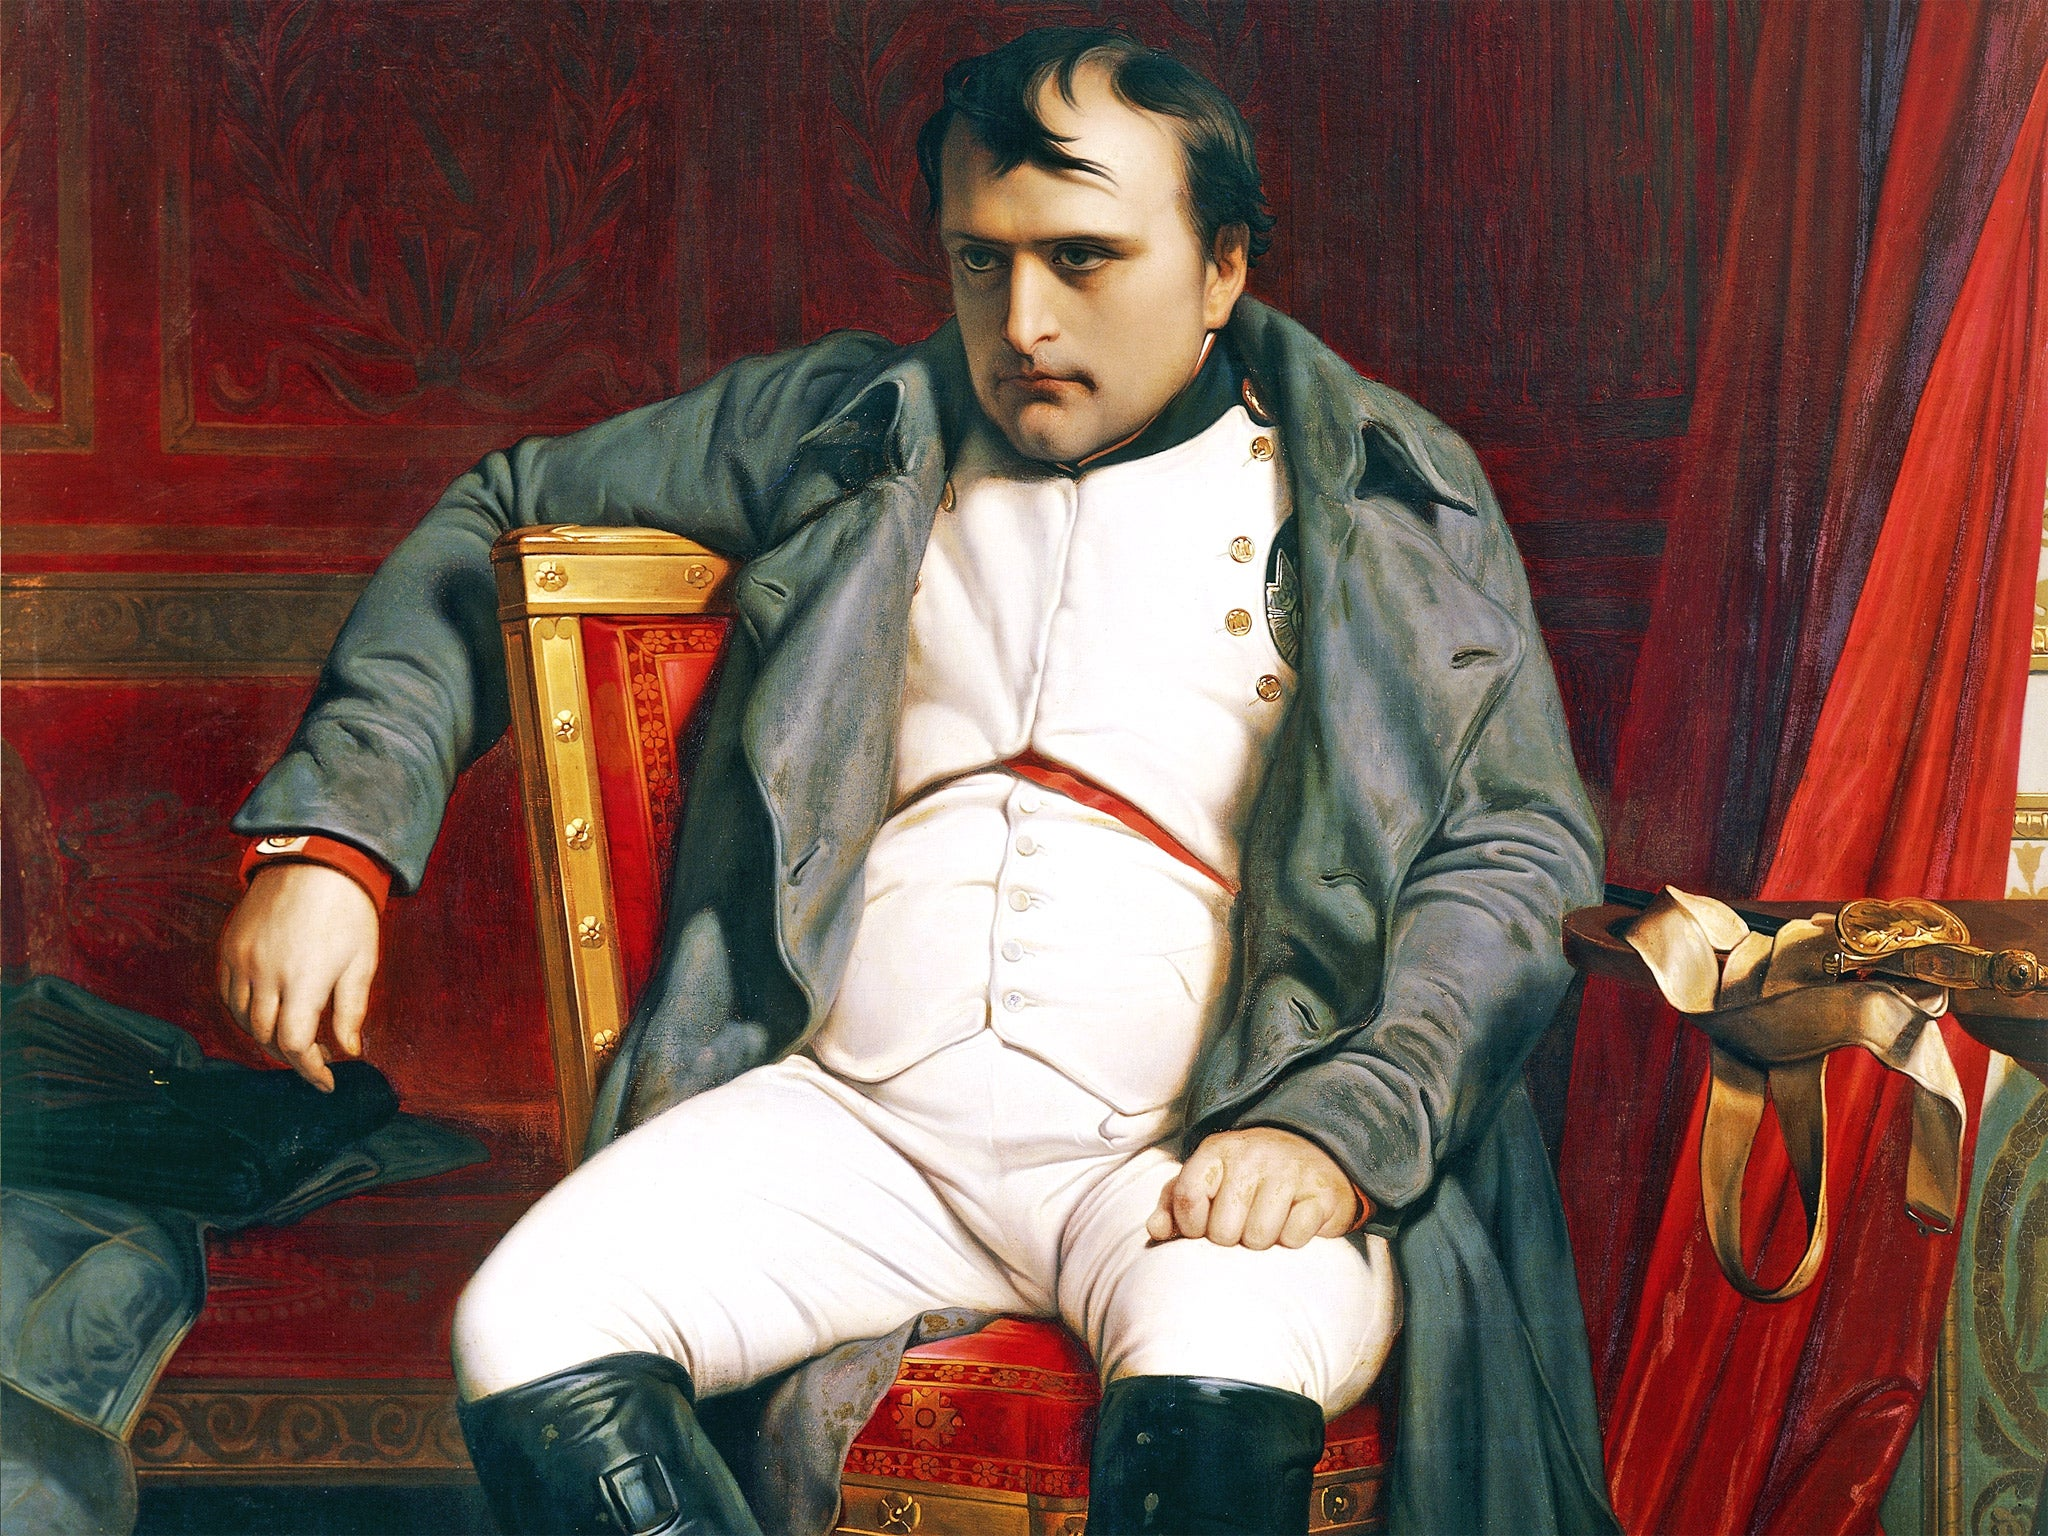 defeated and inglorious why is napoleon not treated more why is napoleon not treated more respect in the independent